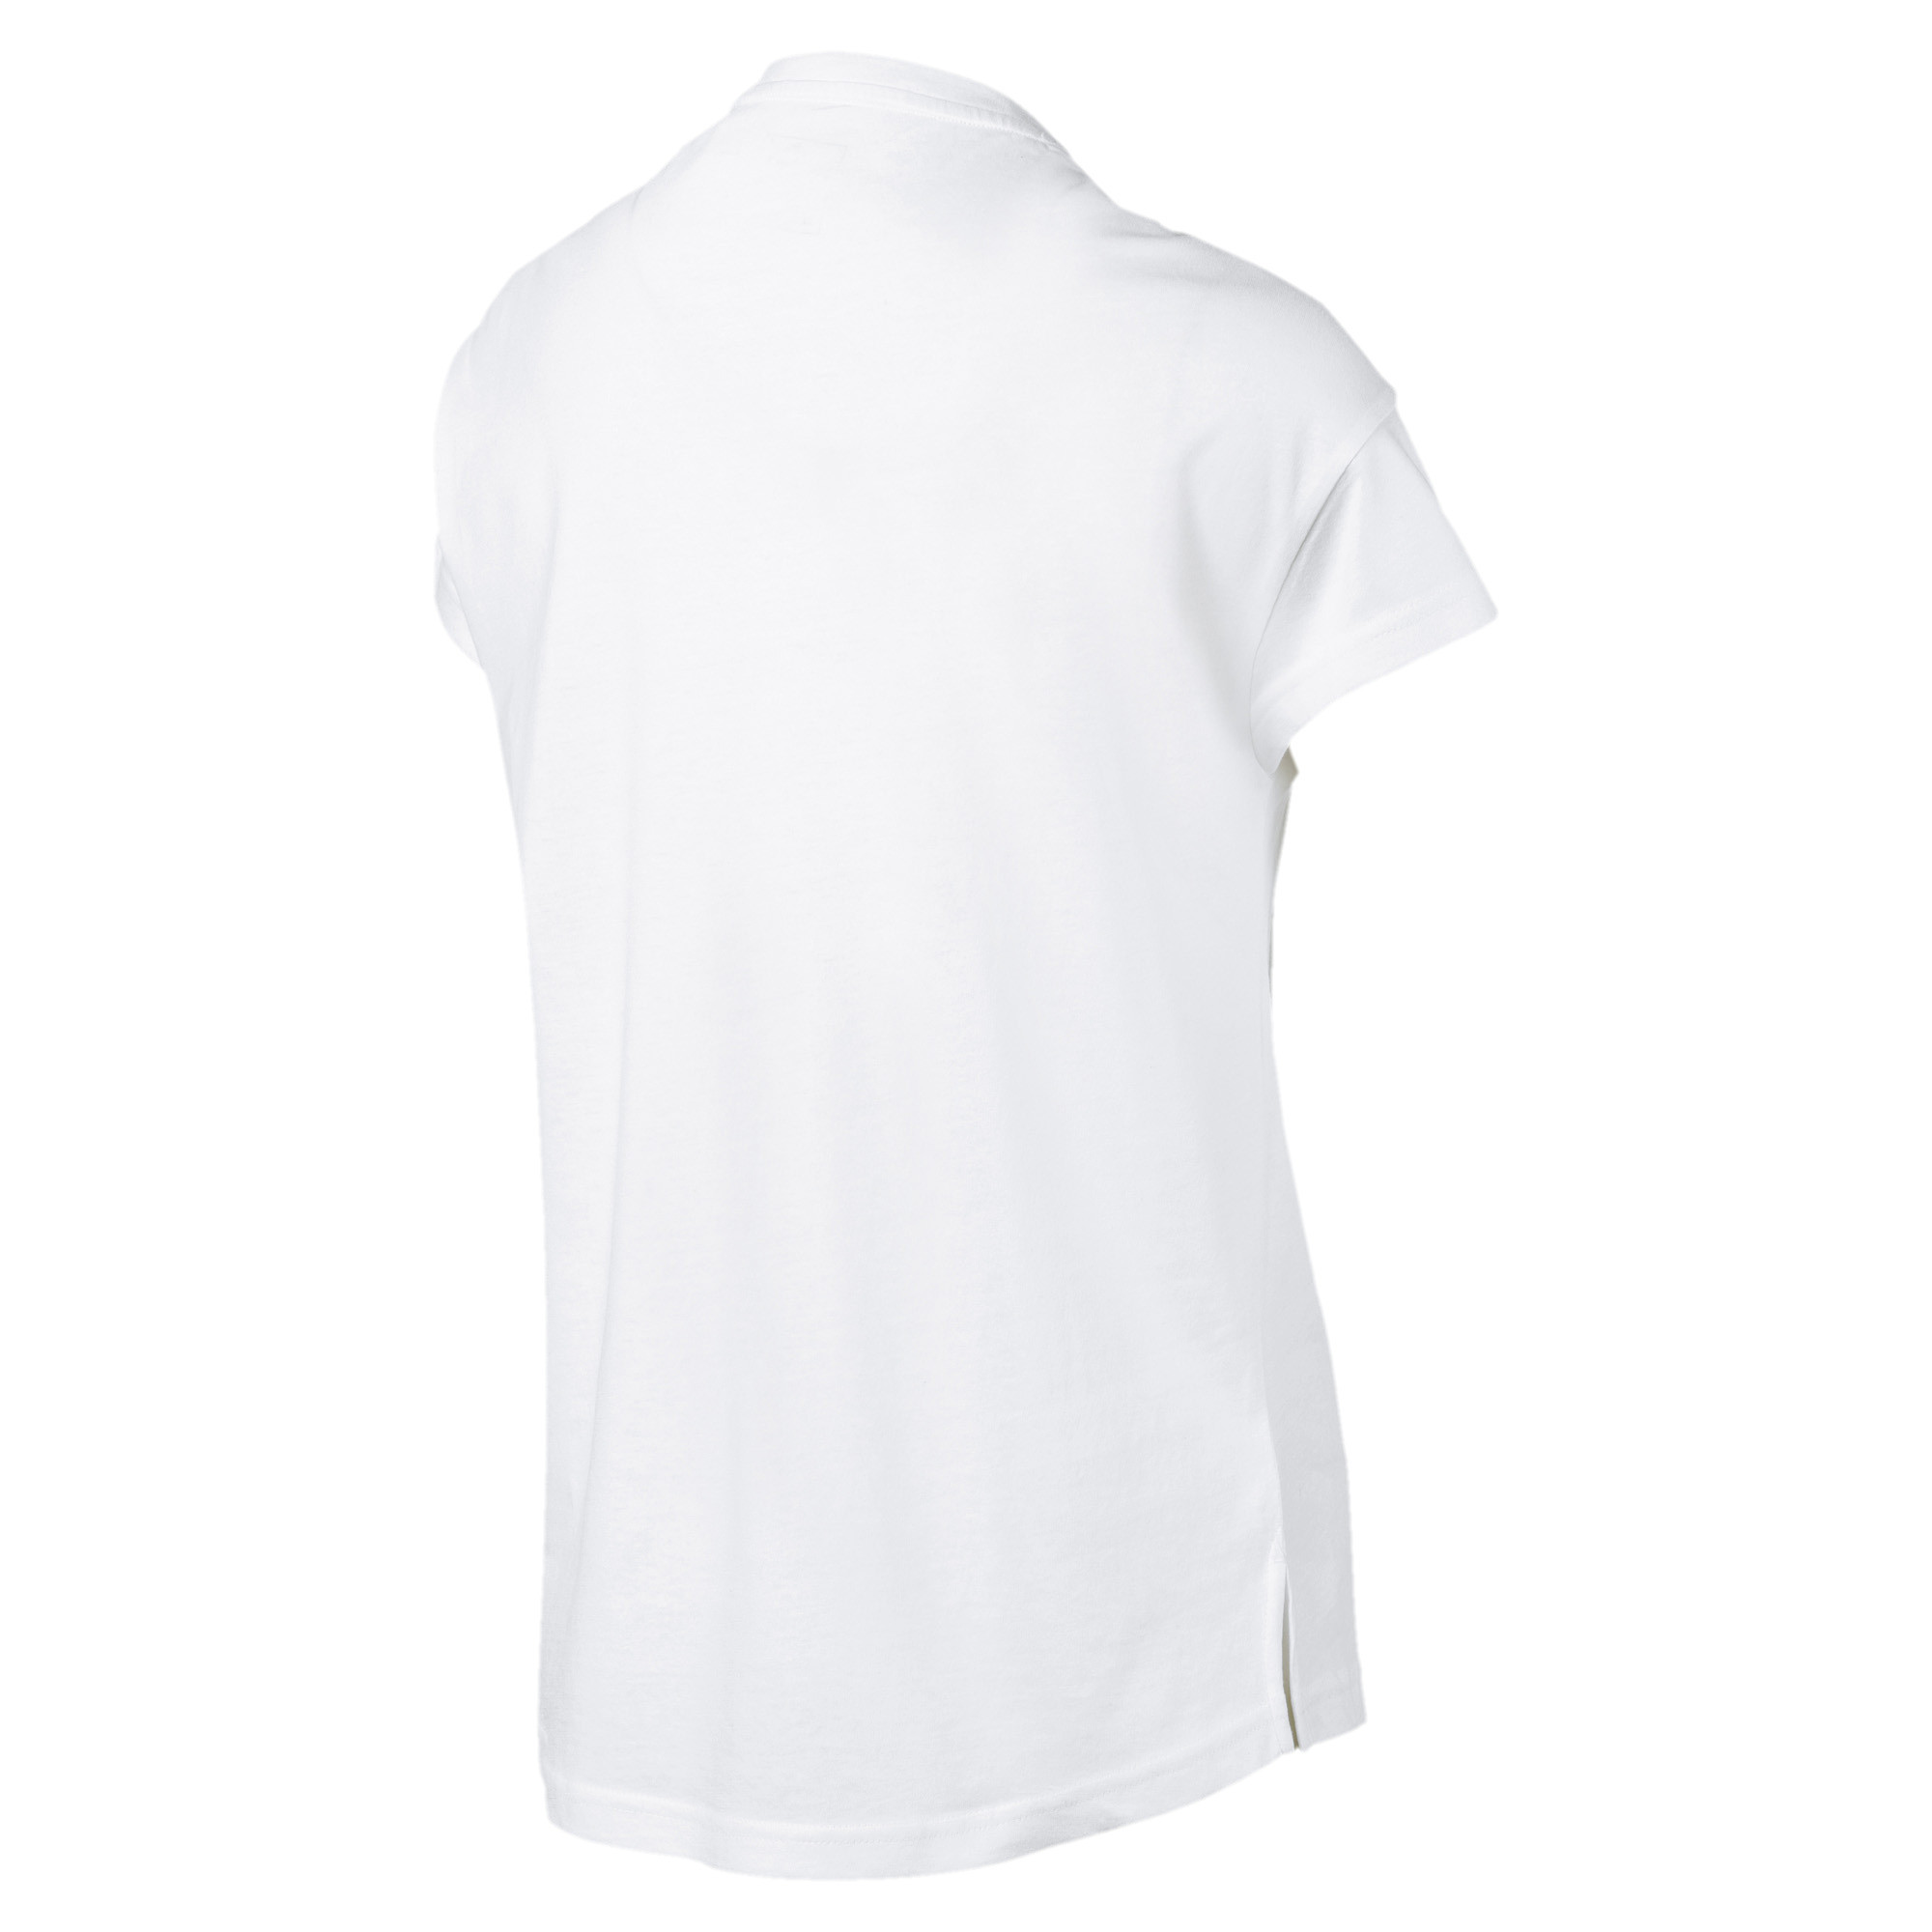 PUMA-Modern-Sports-Women-039-s-Graphic-Tee-Women-Tee-Basics thumbnail 8